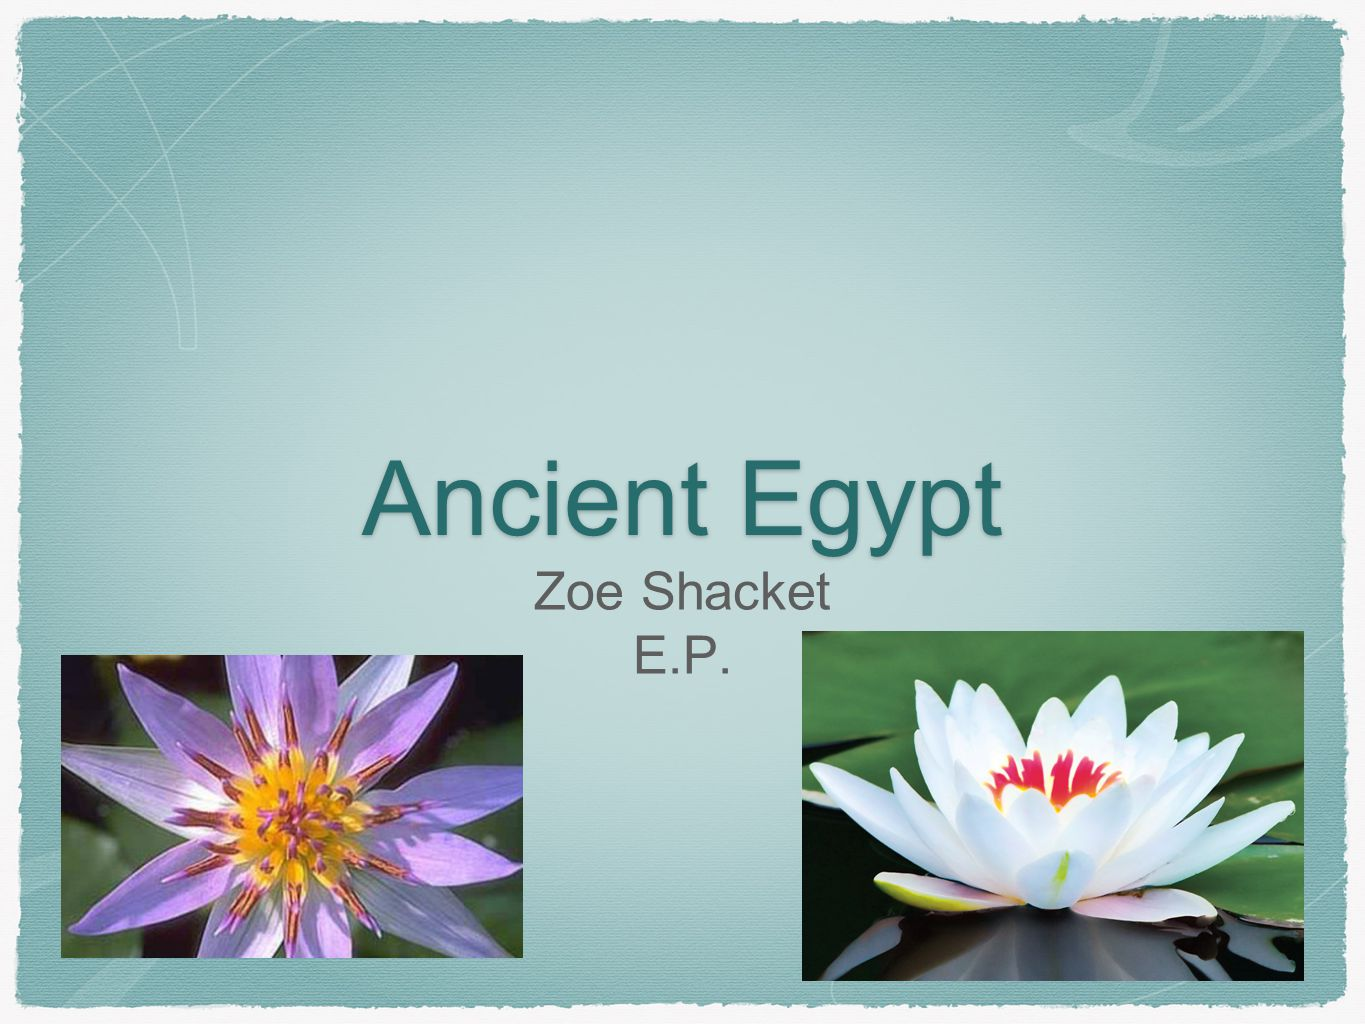 Ancient egypt zoe shacket ep ppt video online download 1 ancient egypt zoe shacket ep izmirmasajfo